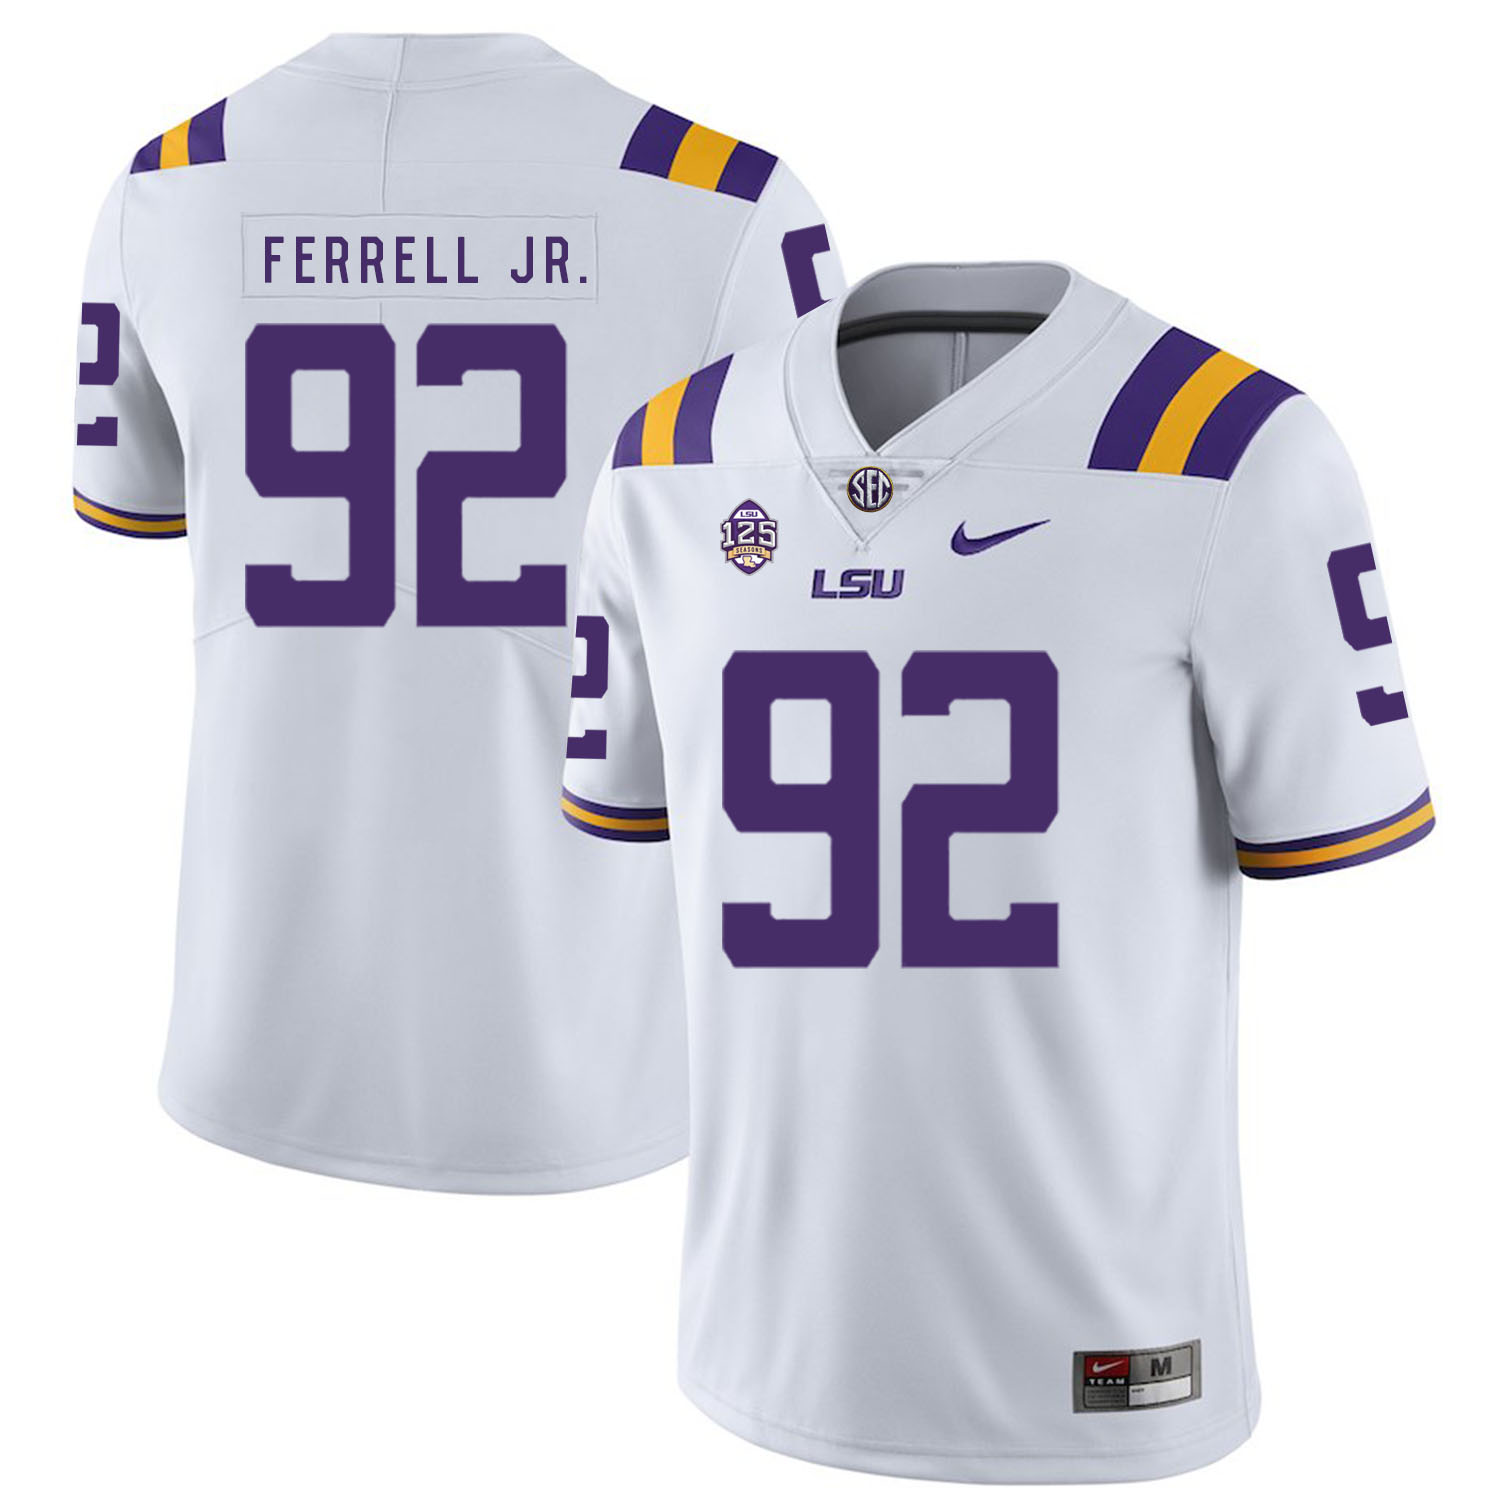 LSU Tigers 92 Neil Ferrell Jr. White Nike College Football Jersey